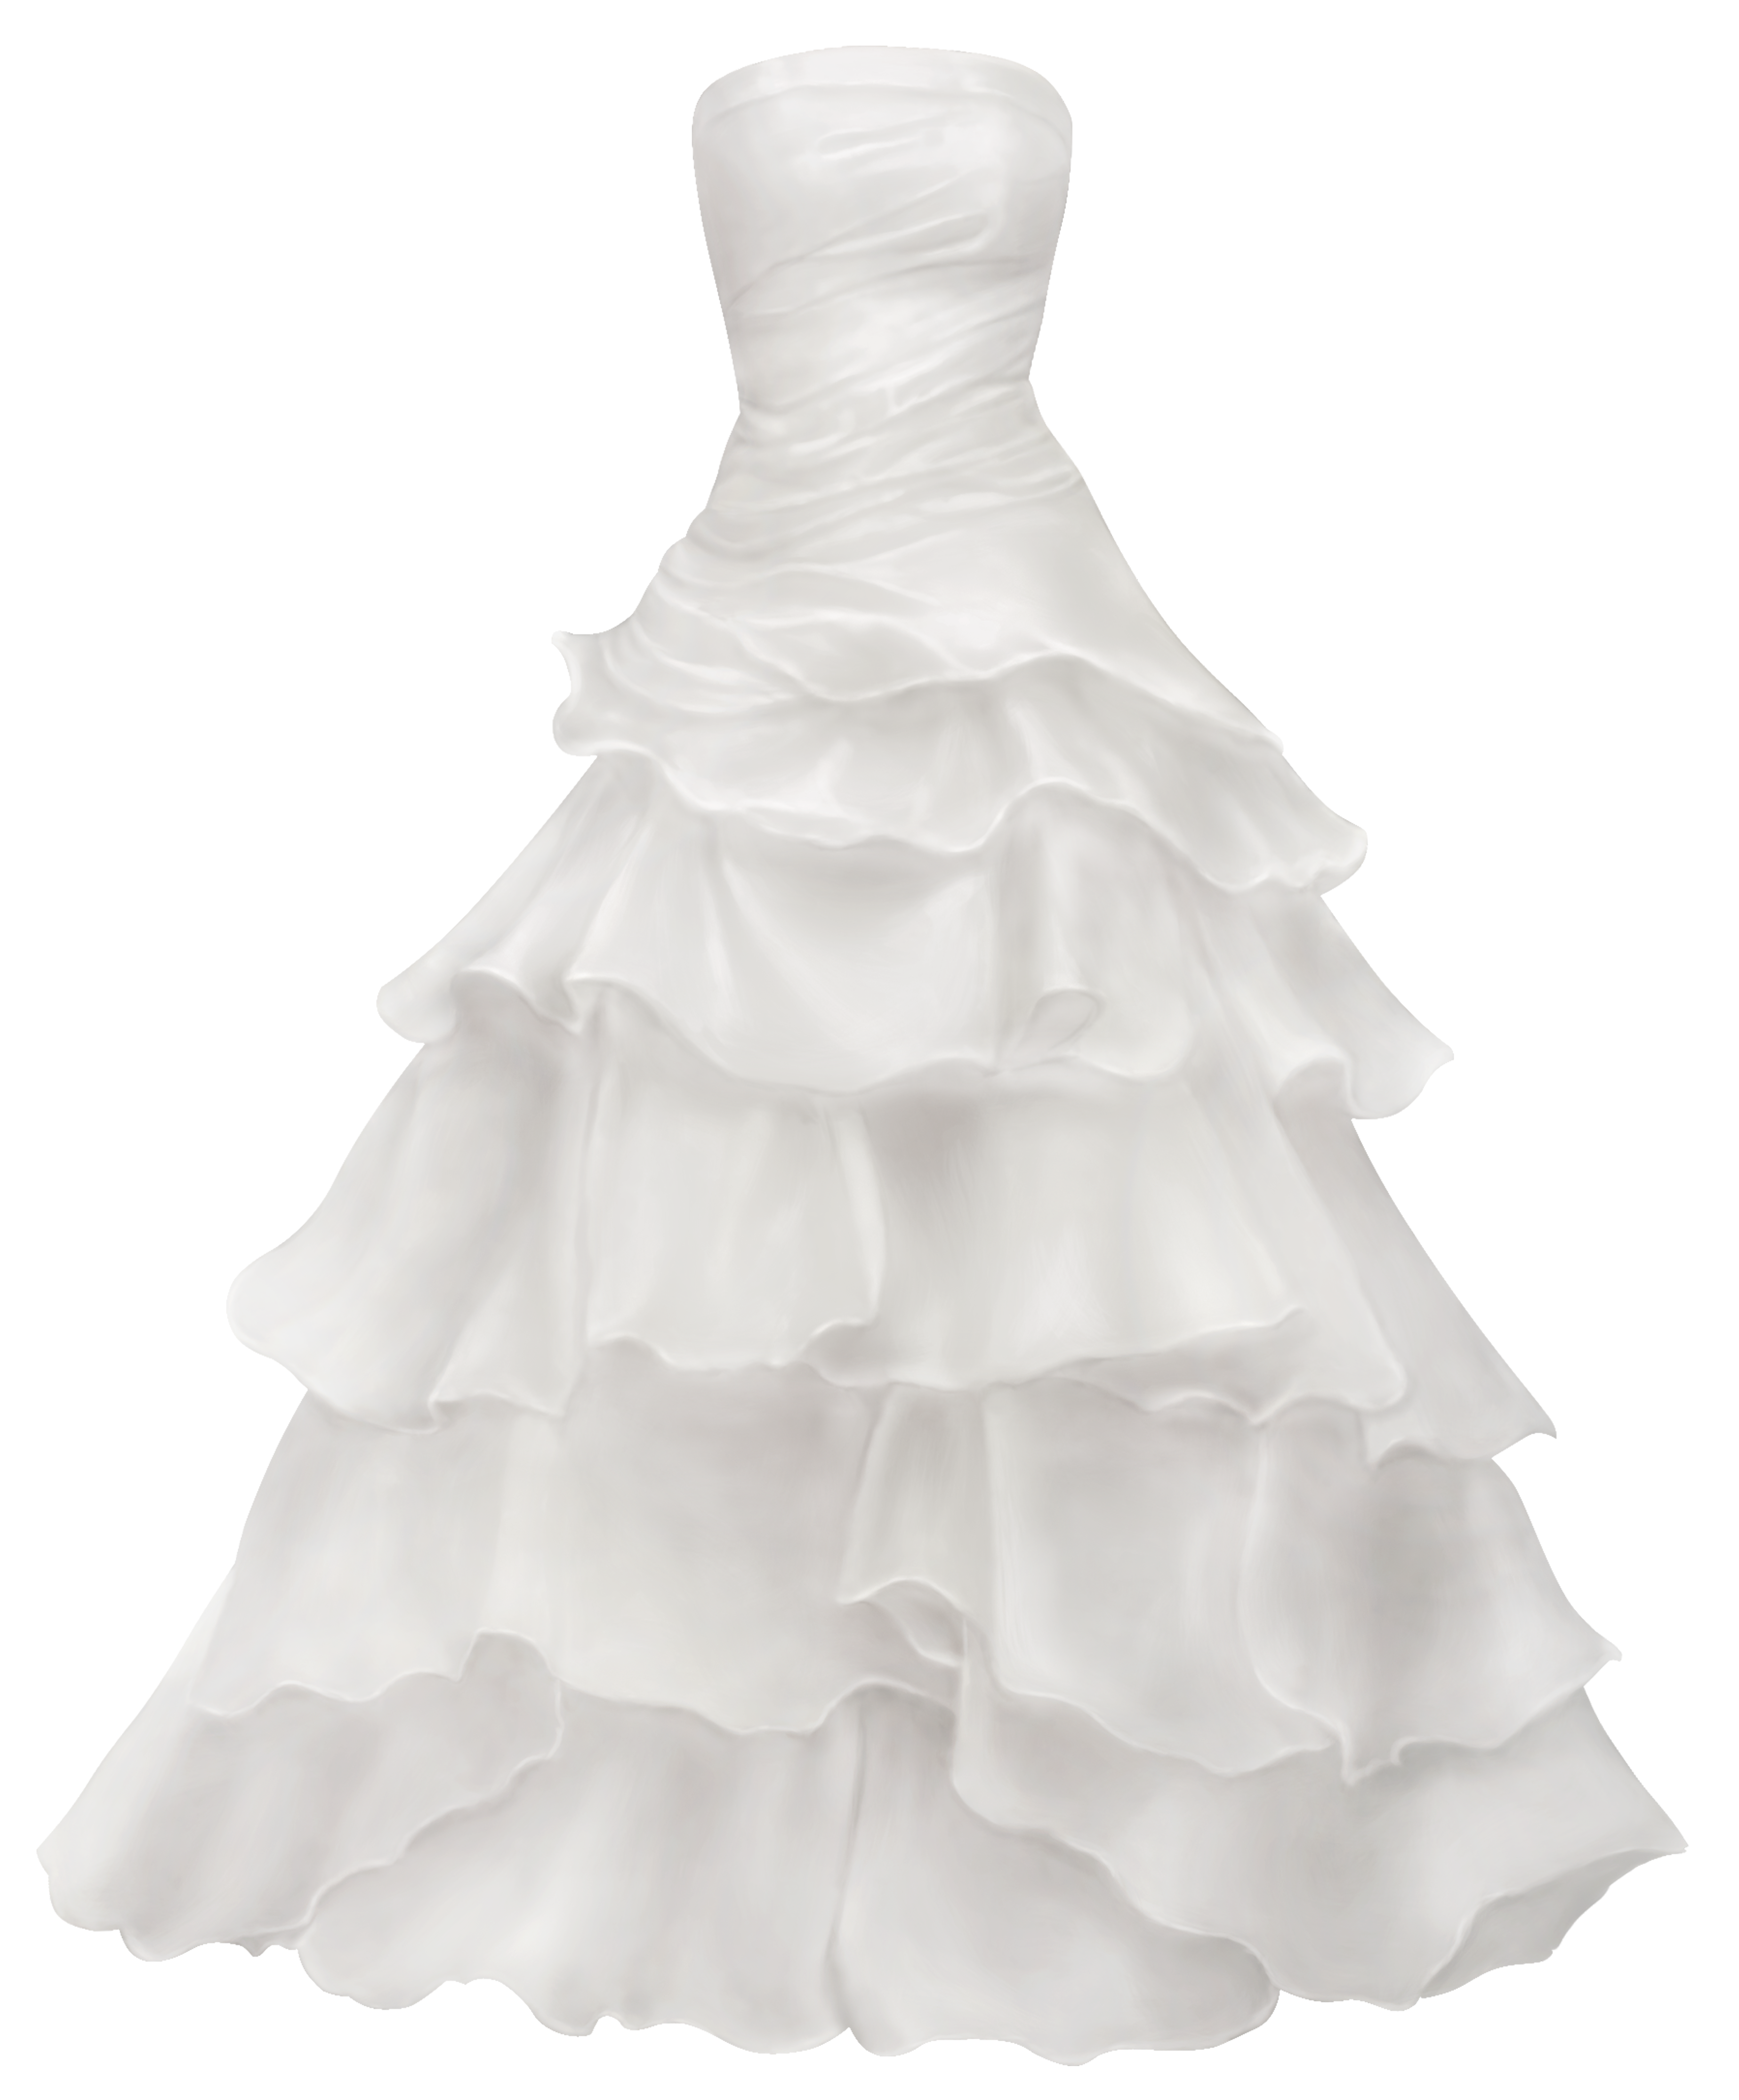 image library stock Ball gown wedding dress. Bride silhouette clipart black and white.